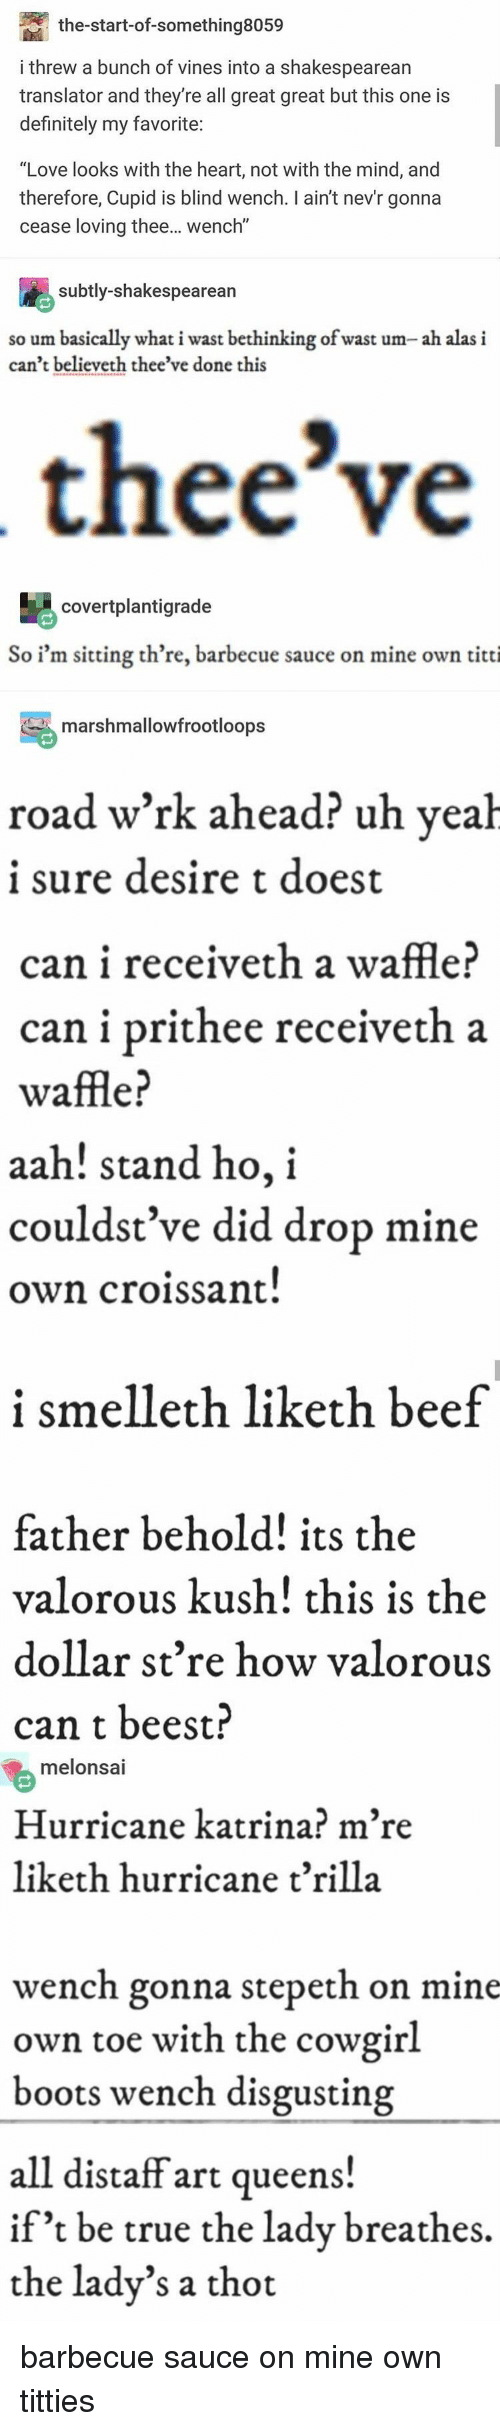 "Beef, Definitely, and Love: the-start-of-something8059  i threw a bunch of vines into a shakespearean  translator and they're all great great but this one is  definitely my favorite  ""Love looks with the heart, not with the mind, and  therefore, Cupid is blind wench. I ain't nev'r gonna  cease loving thee... wench""  subtly-shakespearean  so um basically what i wast bethinking of wast um- ah alas i  can't believeth thee've done this  thee've  covertplantigrade  So i'm sitting th're, barbecue sauce on mine own titti  marshmallowfrootloops  road w'rk ahead? uh veah  1 sure desire t doest  can i receiveth a waffle?  can i prithee receiveth a  waffle?  aah! stand ho, i  couldst ve did drop mine  own croissant  i smelleth liketh beef  father behold! its the  valorous kush! this is the  dollar st're how valorous  can t beest?  melonsai  Hurricane katrina? m're  liketh hurricane t'rilla  wench gonna stepeth on mine  own toe with the cowgirl  boots wench disgusting  all distaff art queens!  if't be true the ladv breathes,  the lady's a thot barbecue sauce on mine own titties"